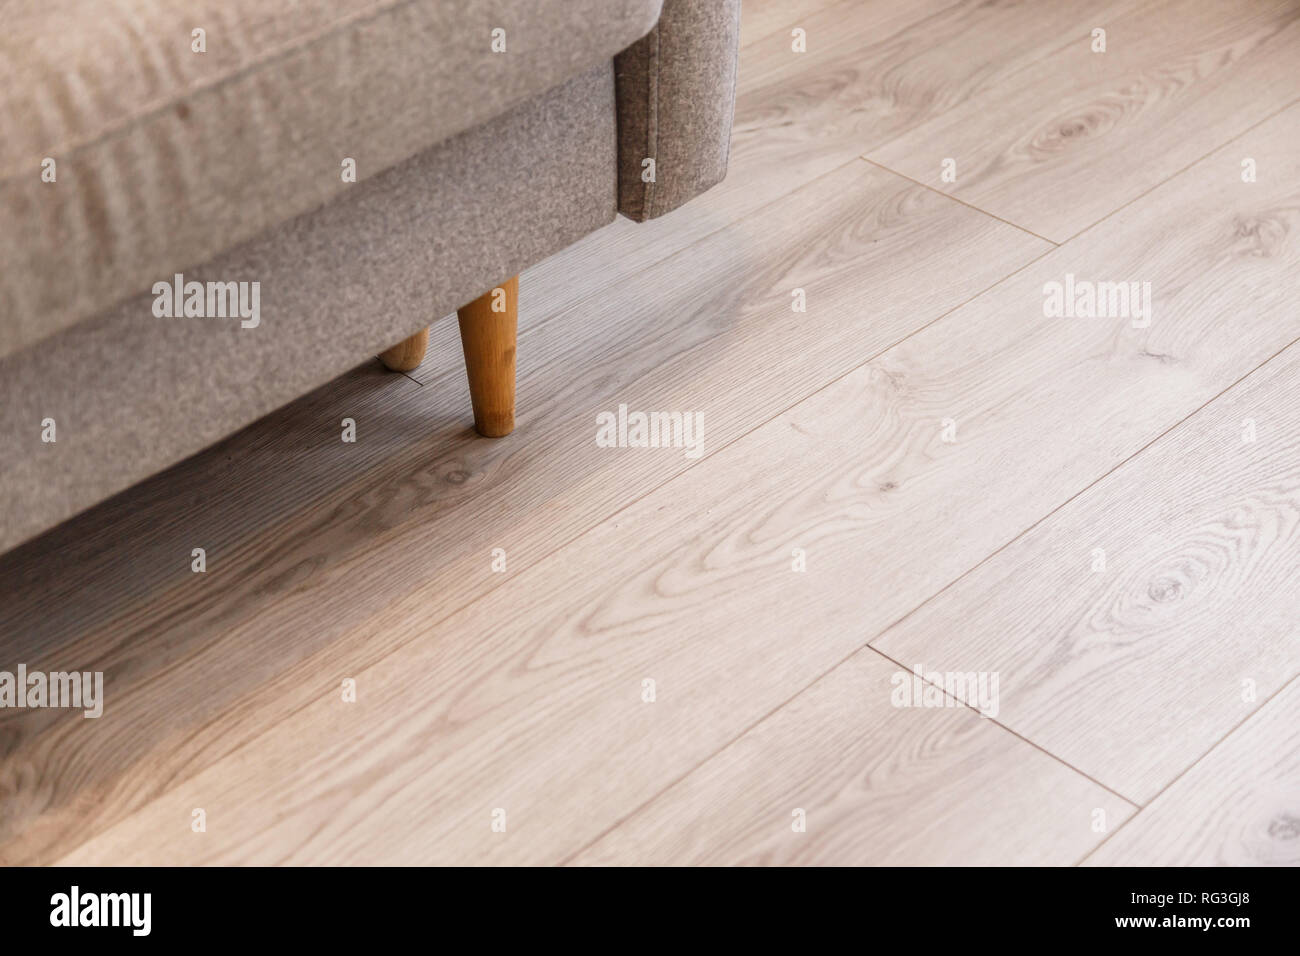 Surprising Grey Sofa With Wooden Legs On Lamonate Floor Stock Photo Theyellowbook Wood Chair Design Ideas Theyellowbookinfo